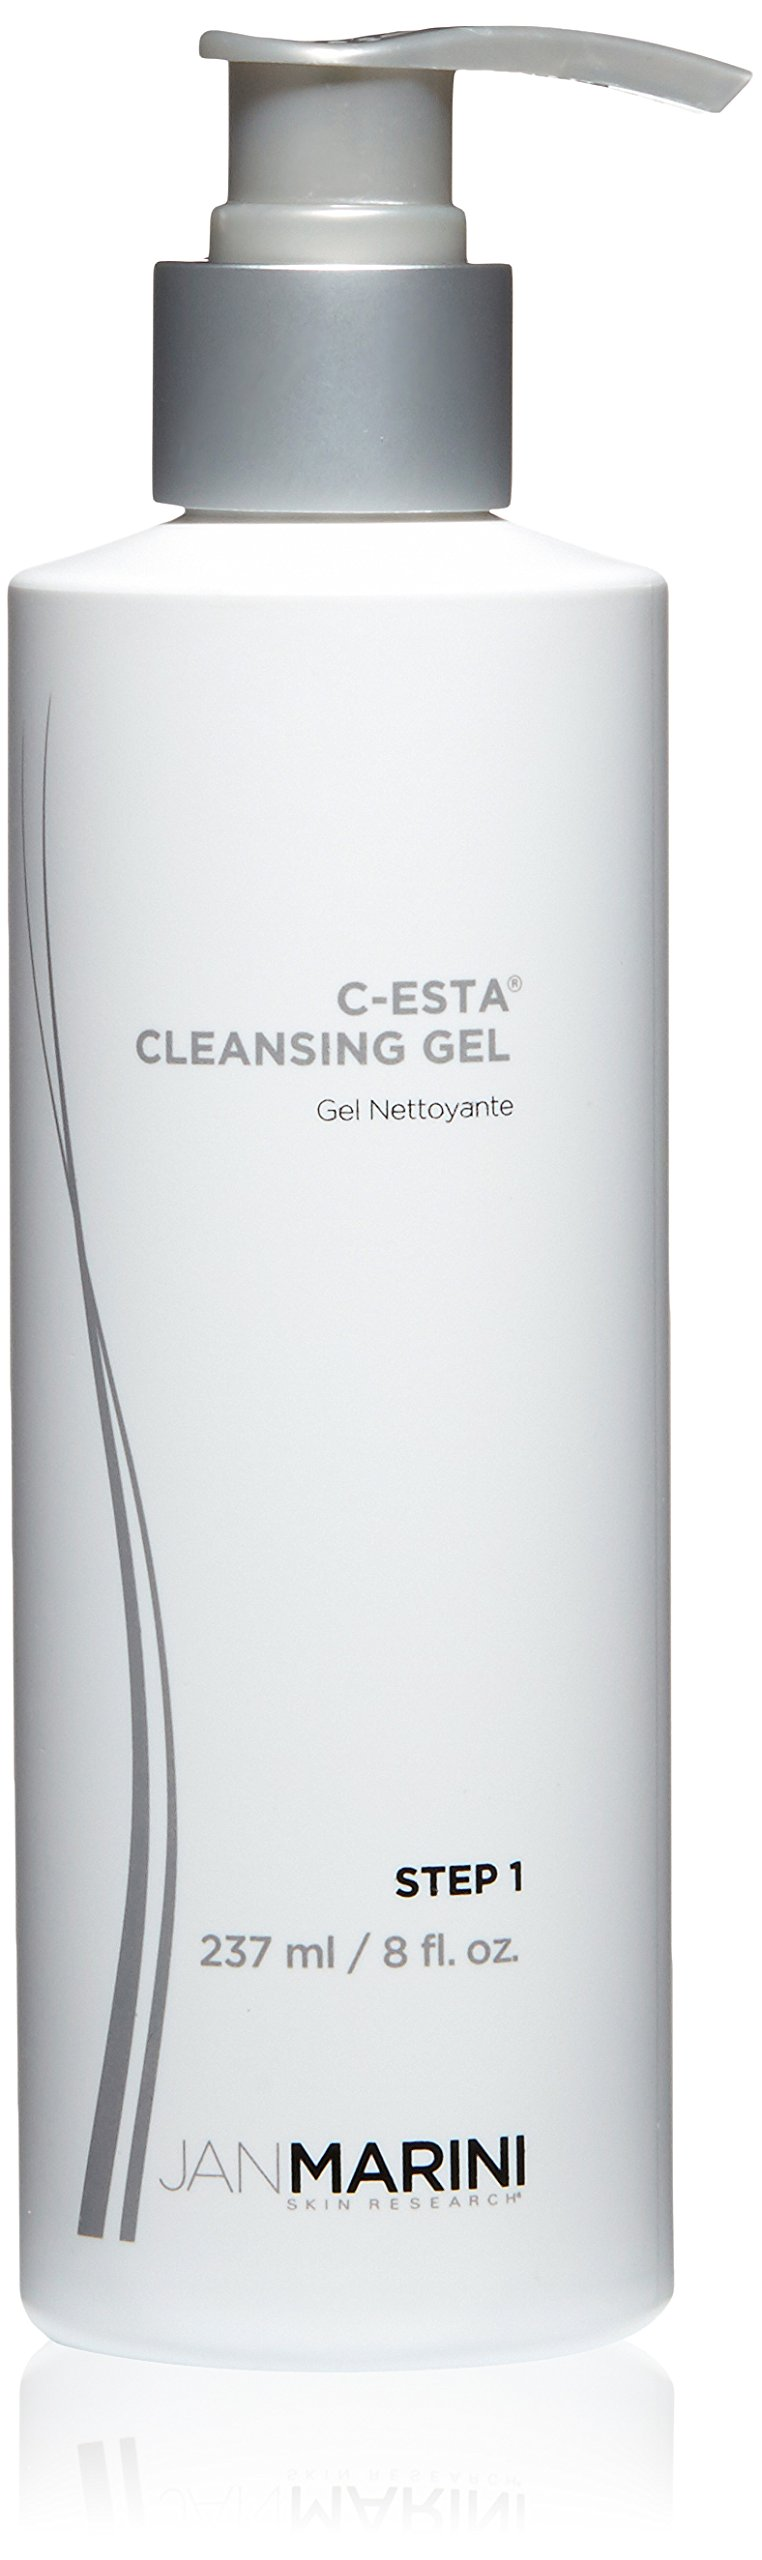 Jan Marini Skin Research C-Esta Cleansing Gel, 8 fl. oz.